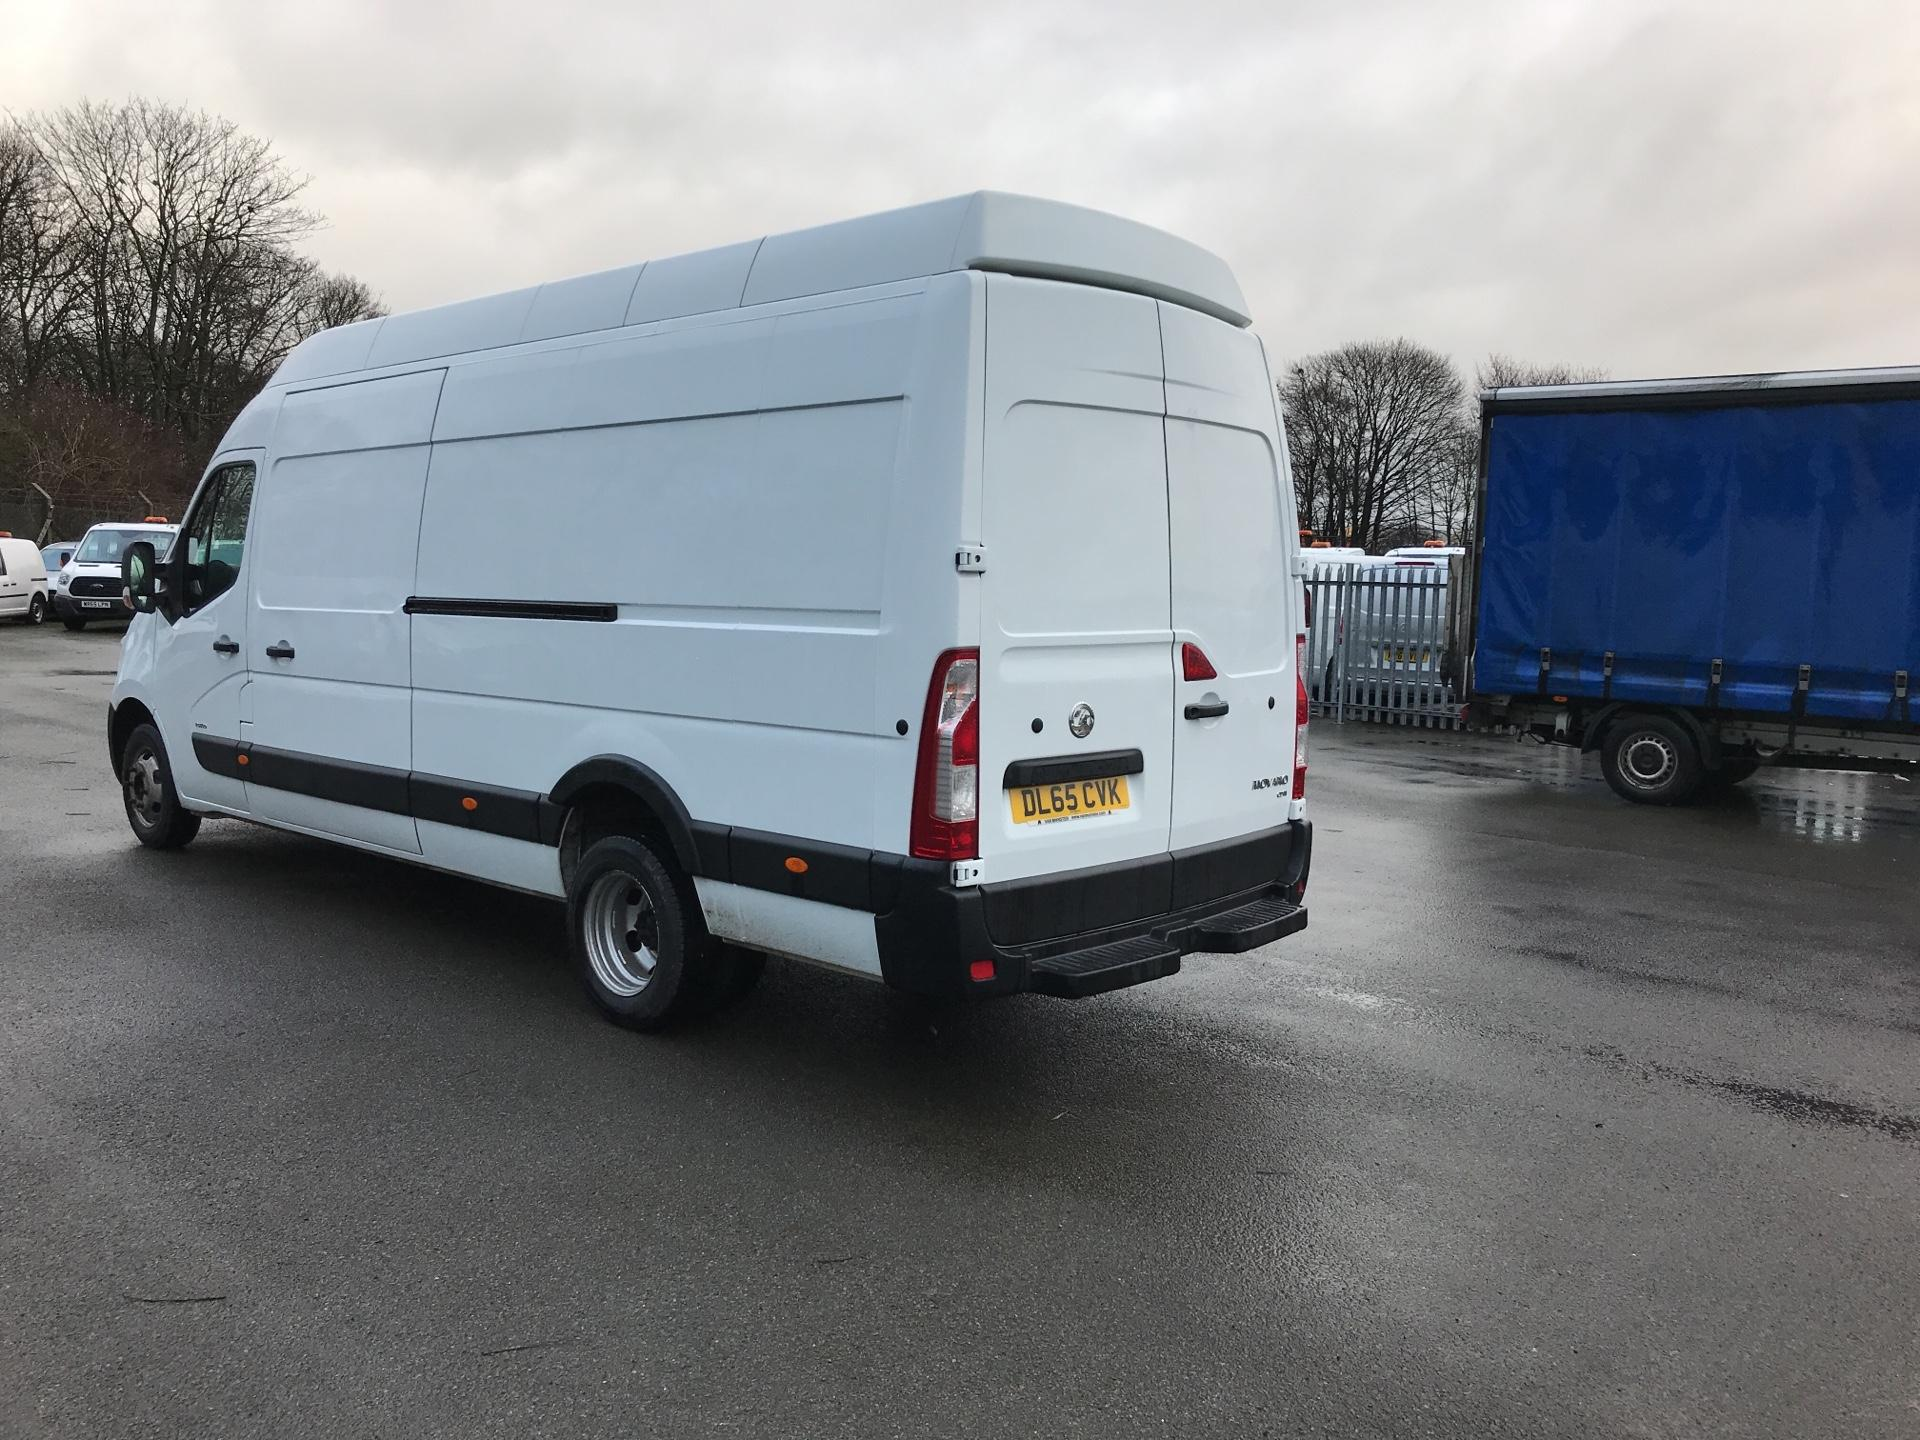 2015 Vauxhall Movano 35 L3 H3 125PS EURO 5 *VALUE RANGE VEHICLE - CONDITION REFLECTED IN PRICE* (DL65CVK) Image 5